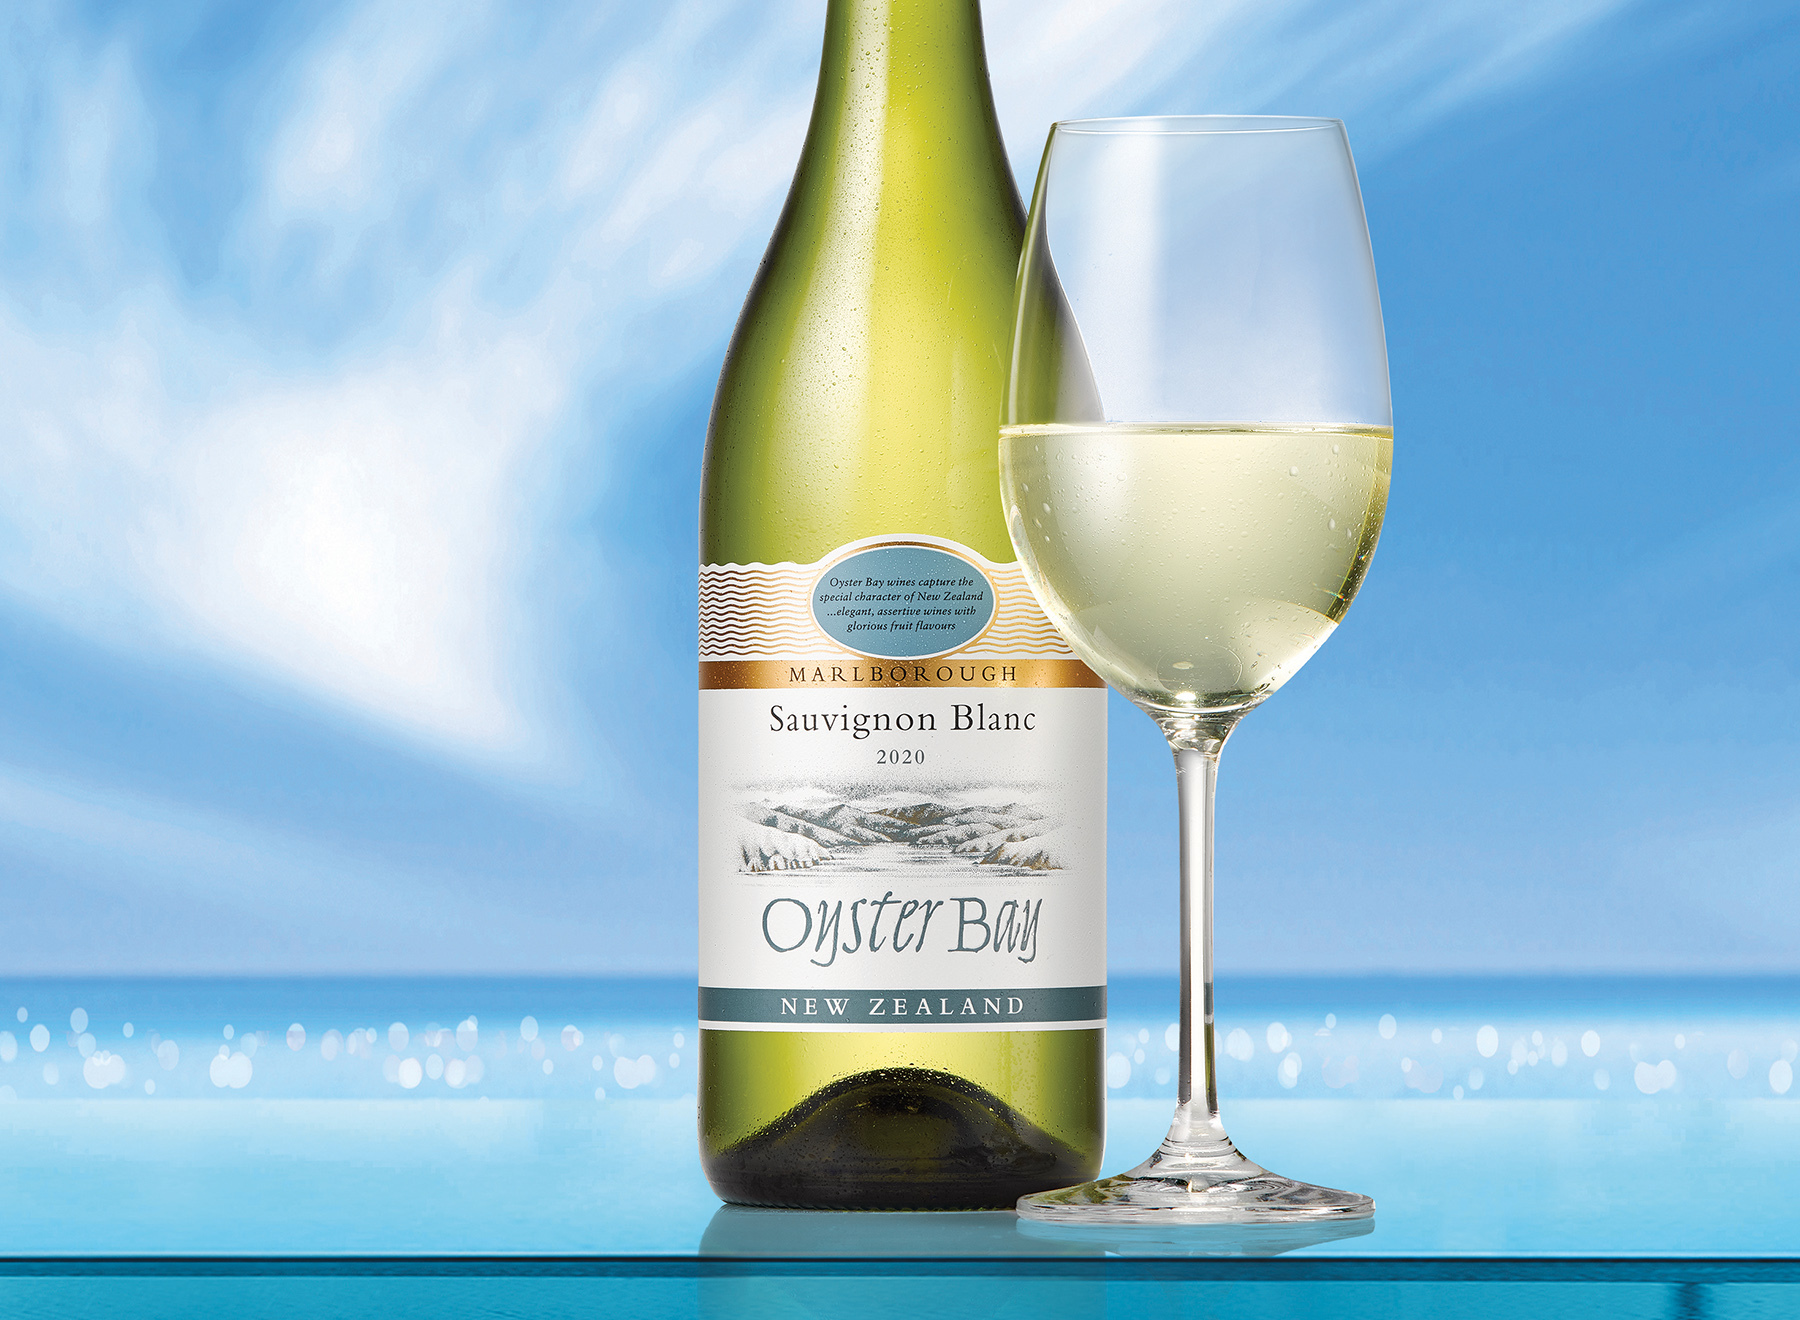 2020 oyster bay marlborough sauvignon blanc bottle glass ledge